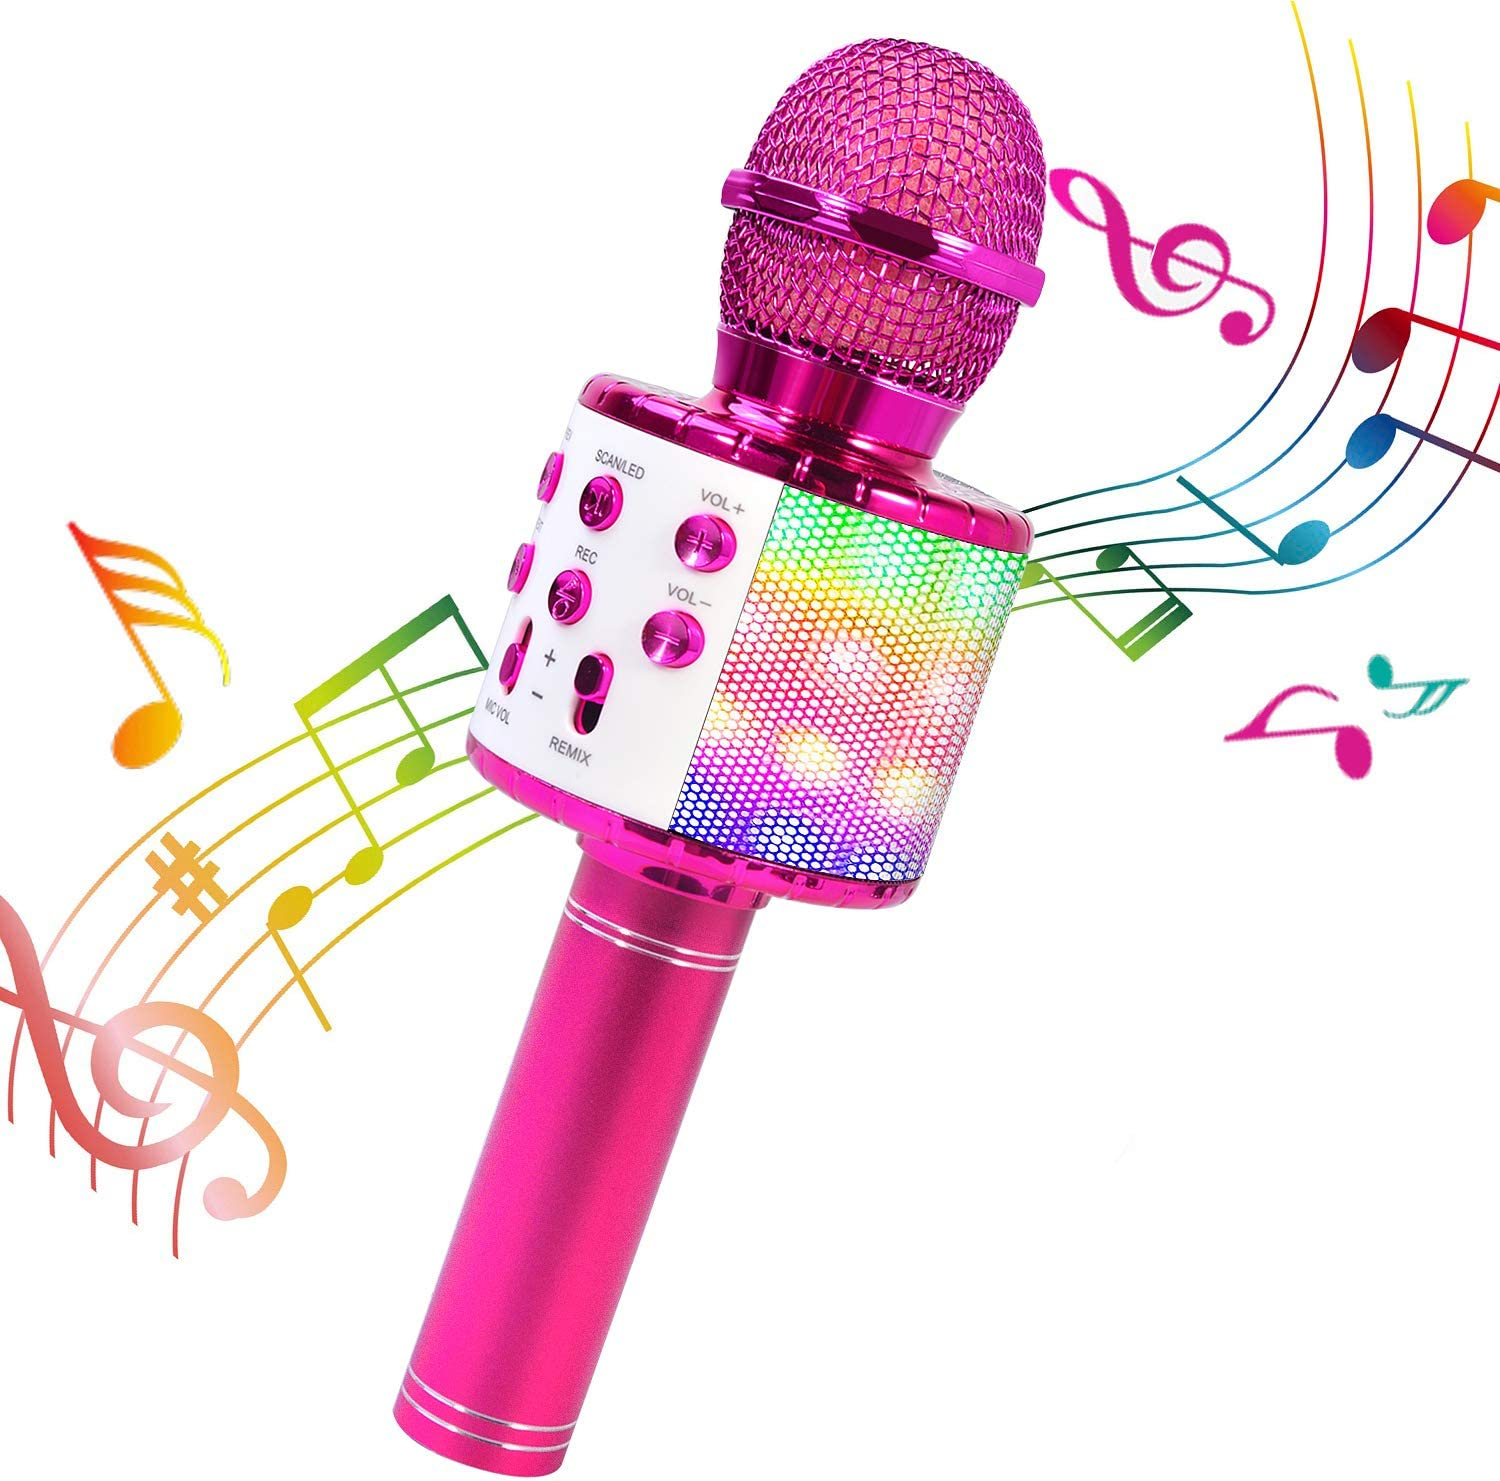 BlueFire Wireless 4 in 1 Bluetooth Karaoke Microphone with LED Lights, Portable Microphone for Kids, Best Gifts Toys for Kids, Girls, Boys and Adults (Purple)